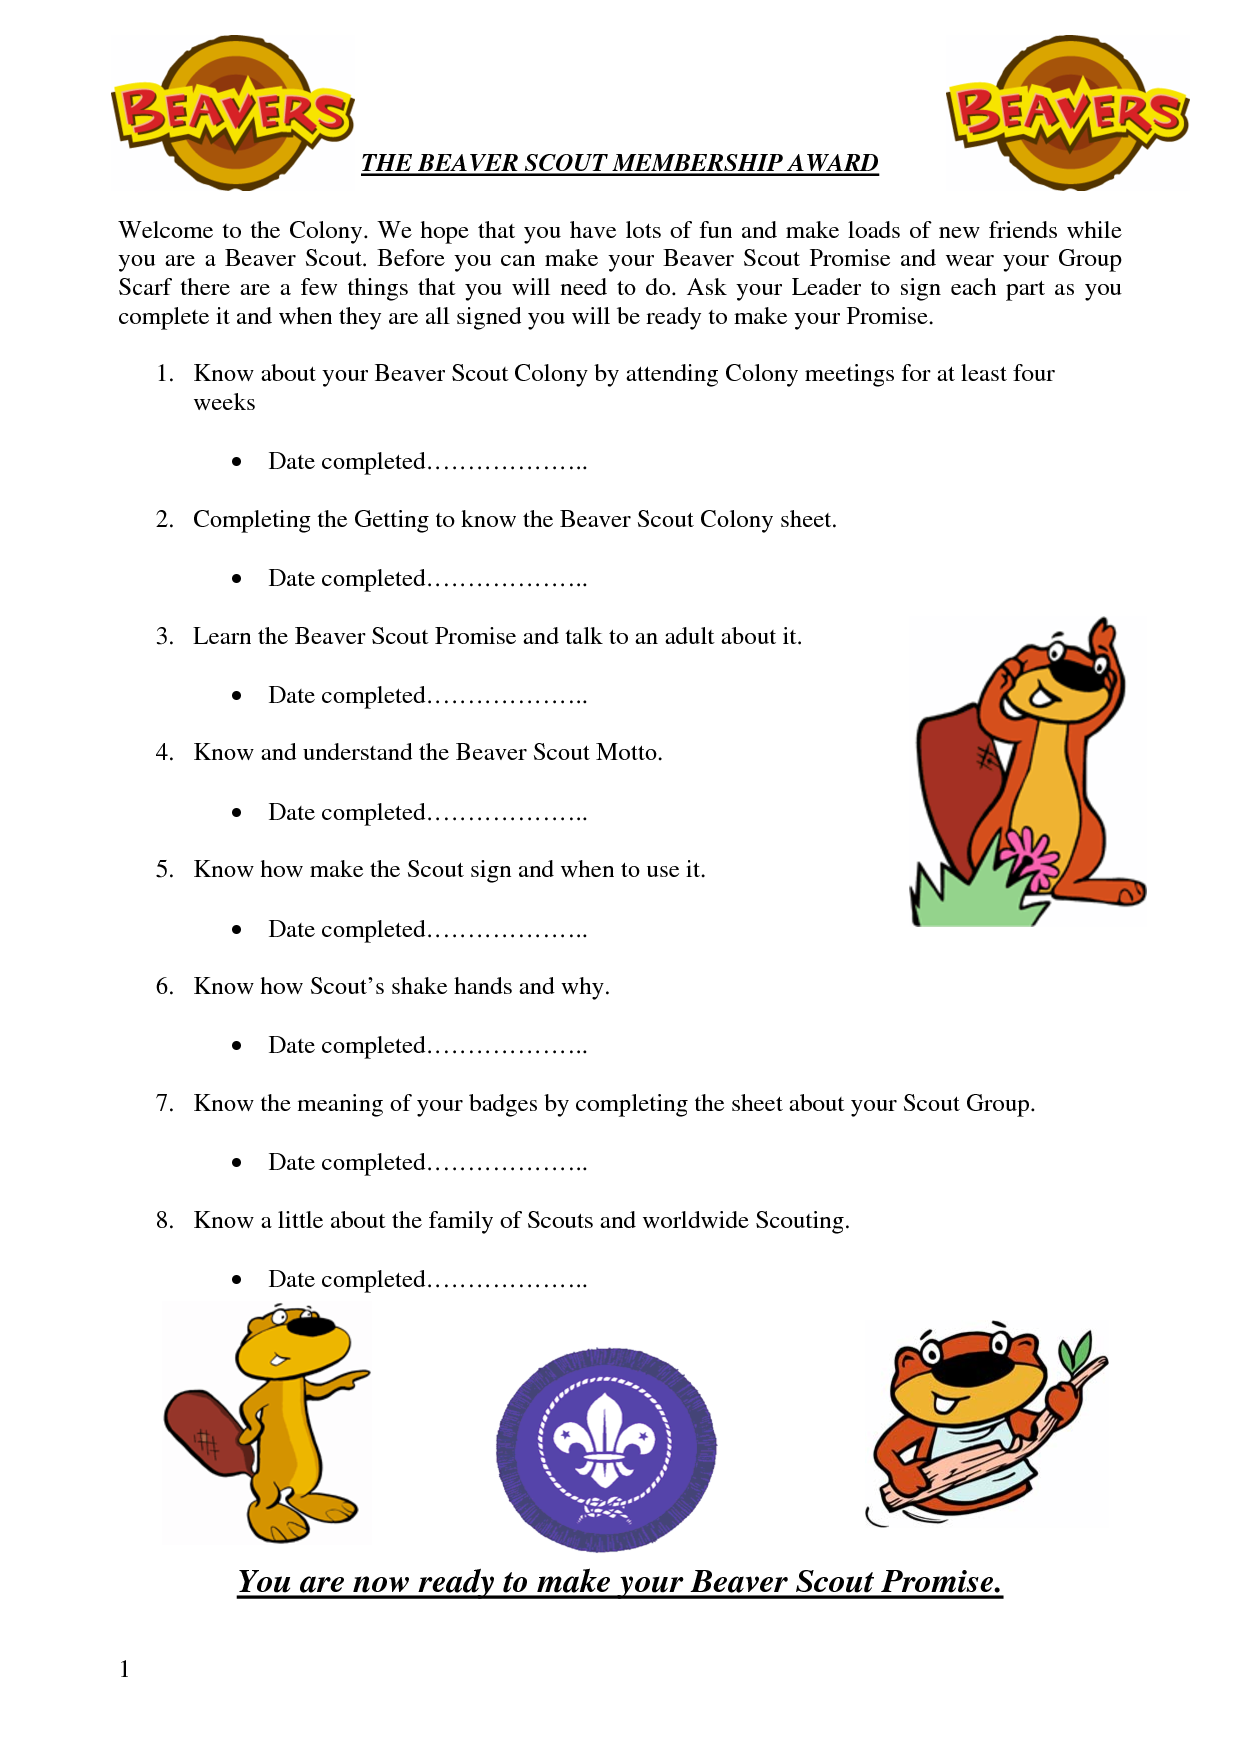 You Are Now Ready To Make Your Beaver Scout Promise